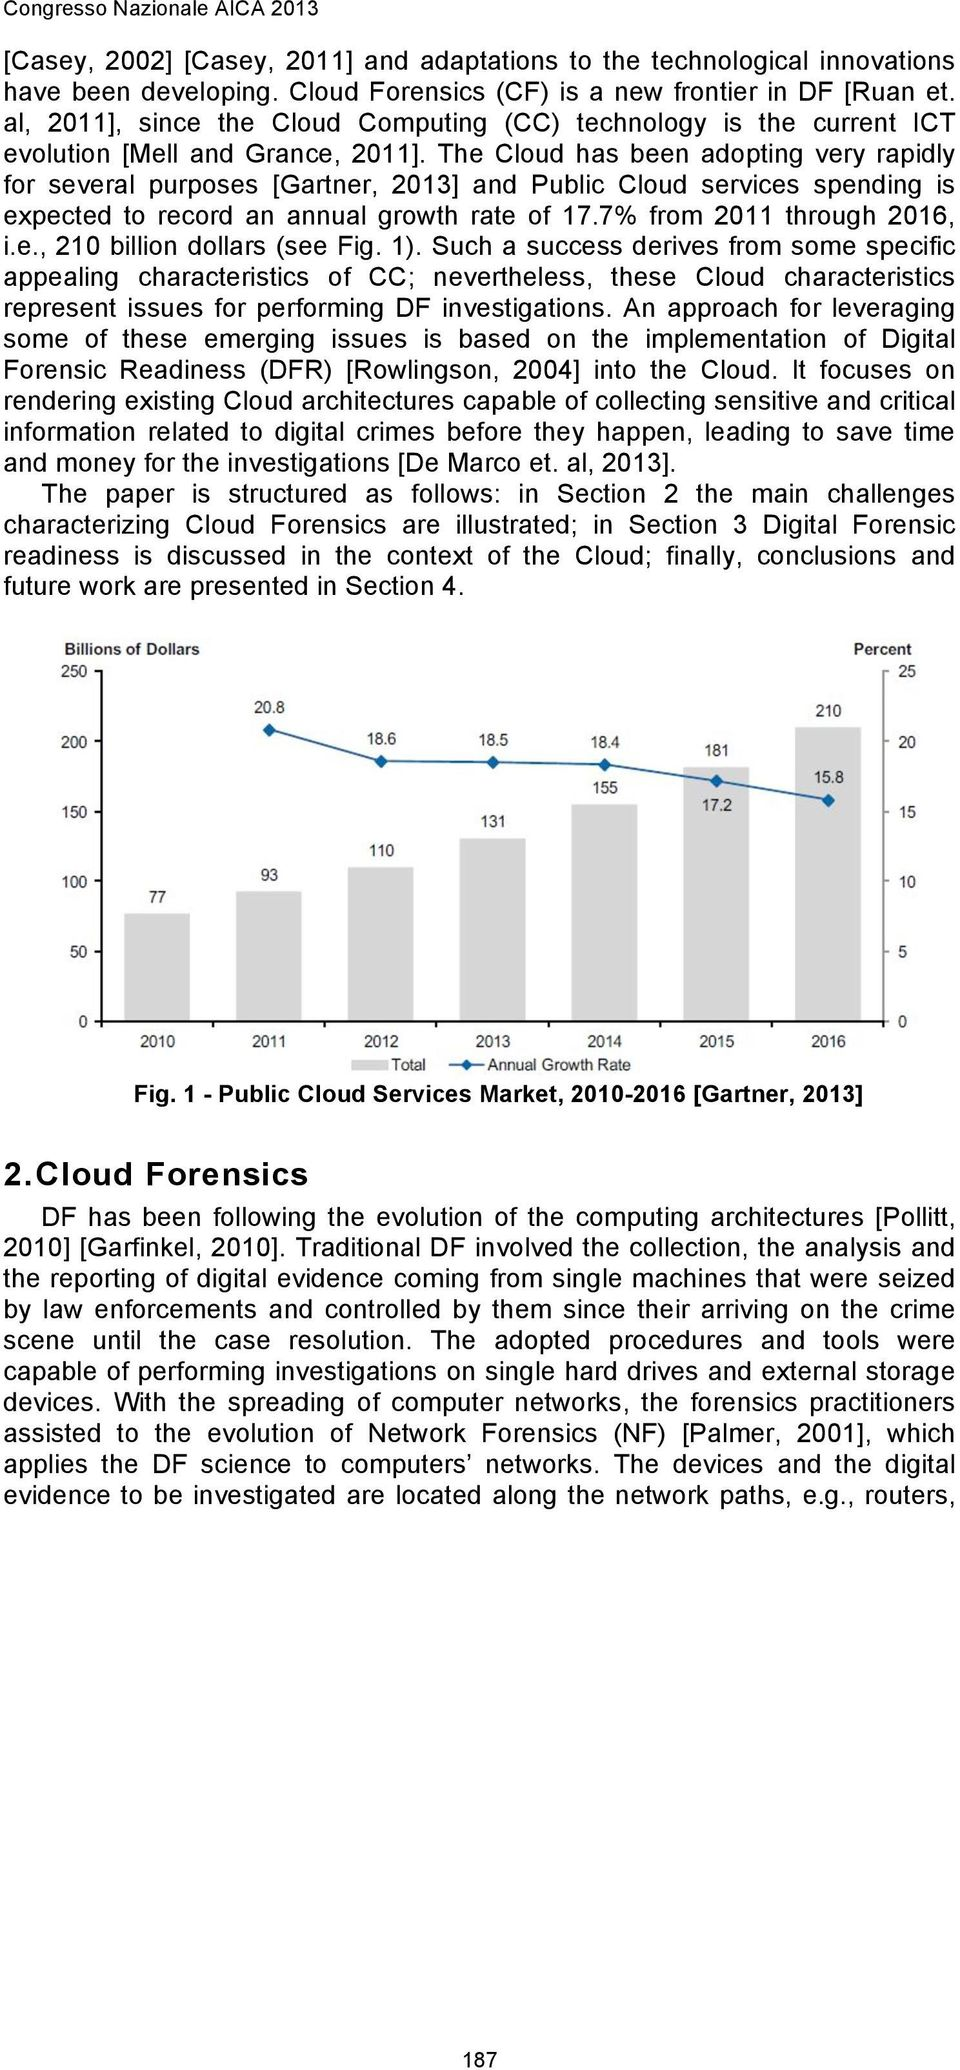 The Cloud has been adopting very rapidly for several purposes [Gartner, 2013] and Public Cloud services spending is expected to record an annual growth rate of 17.7% from 2011 through 2016, i.e., 210 billion dollars (see Fig.